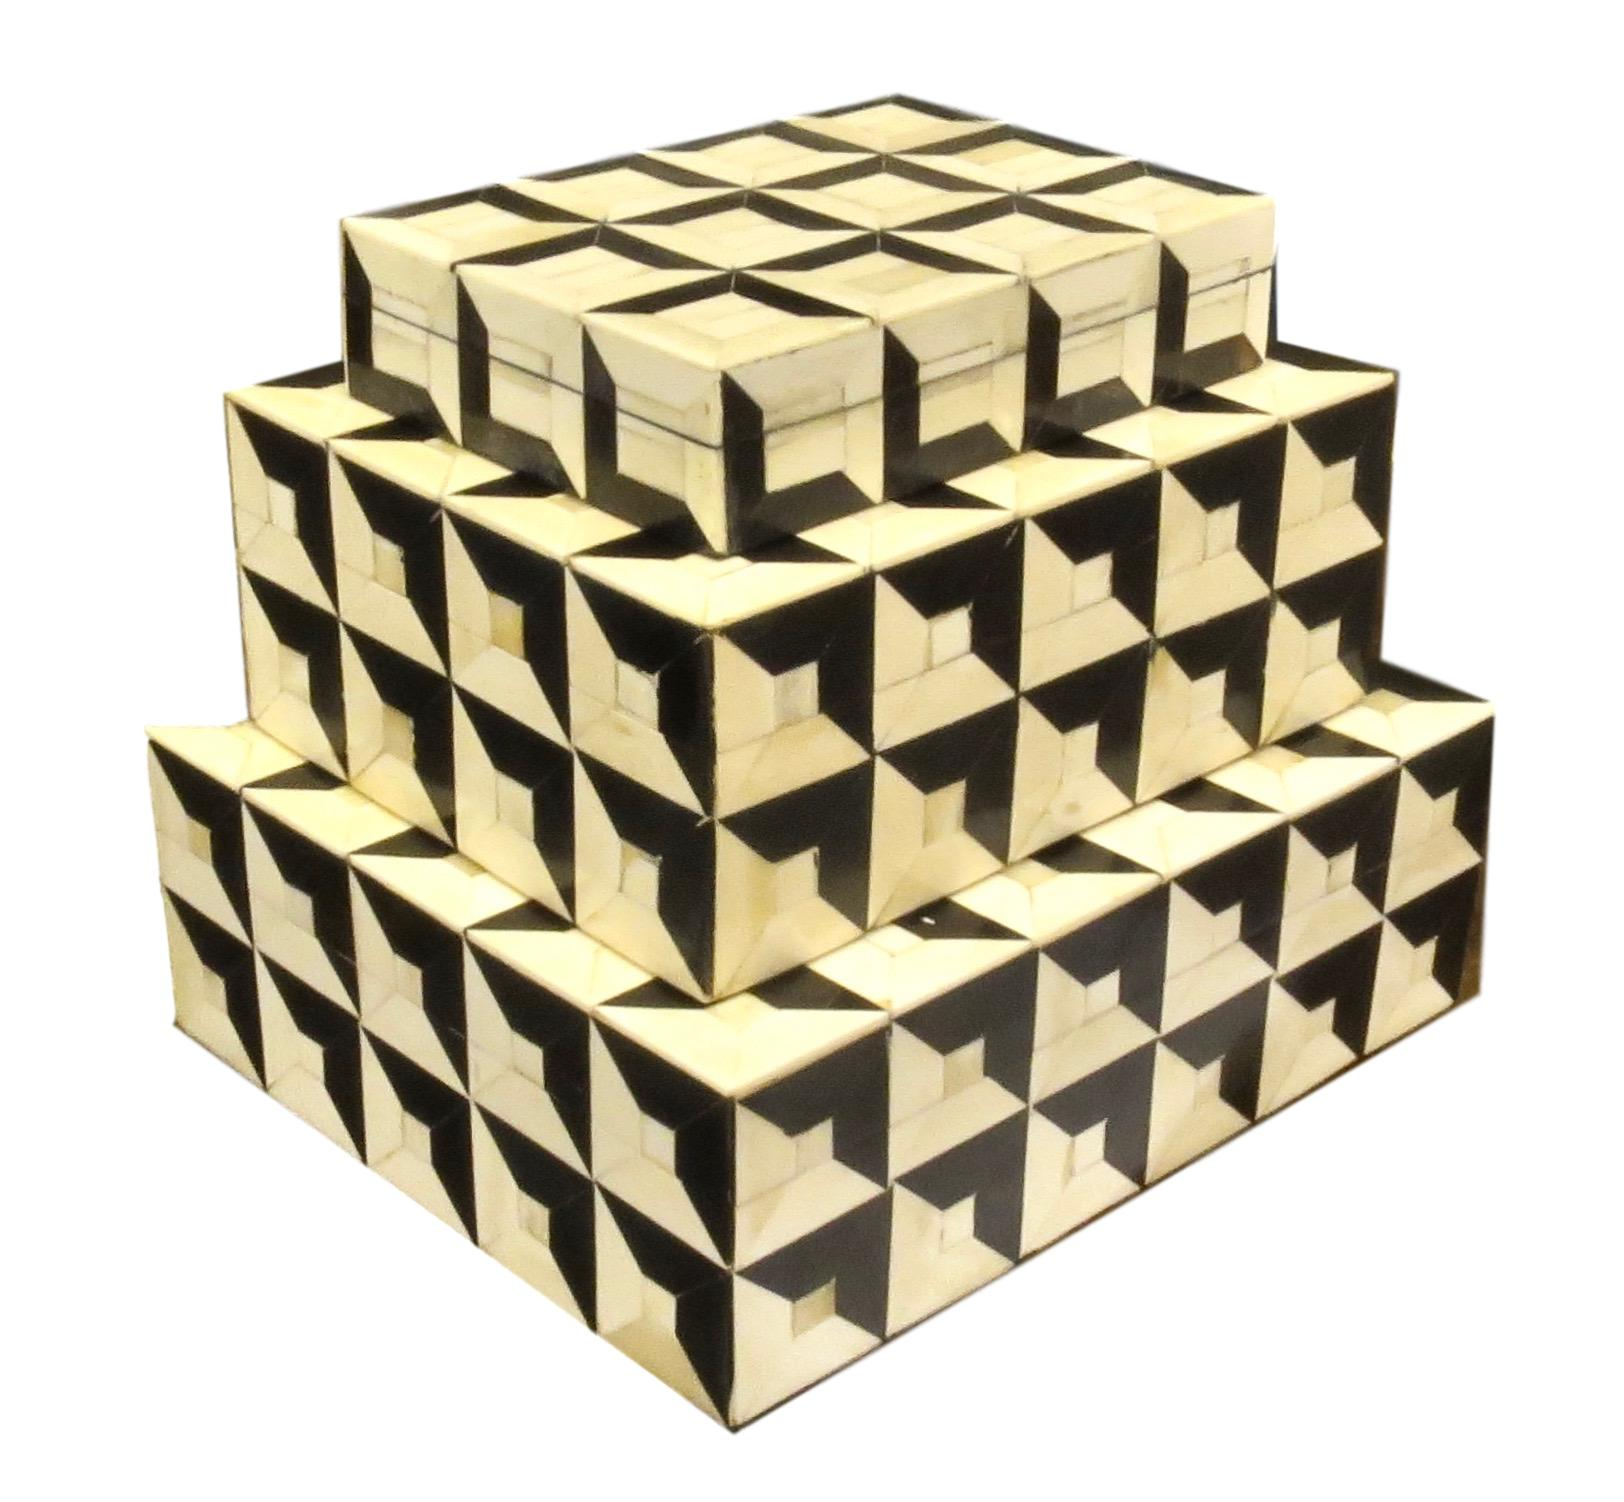 Black/White Geometric Bone Box   Large   12x10x4h   BIT113L  Medium   10x8x4h   BIT113M  Small   8x6x2h   BIT113S